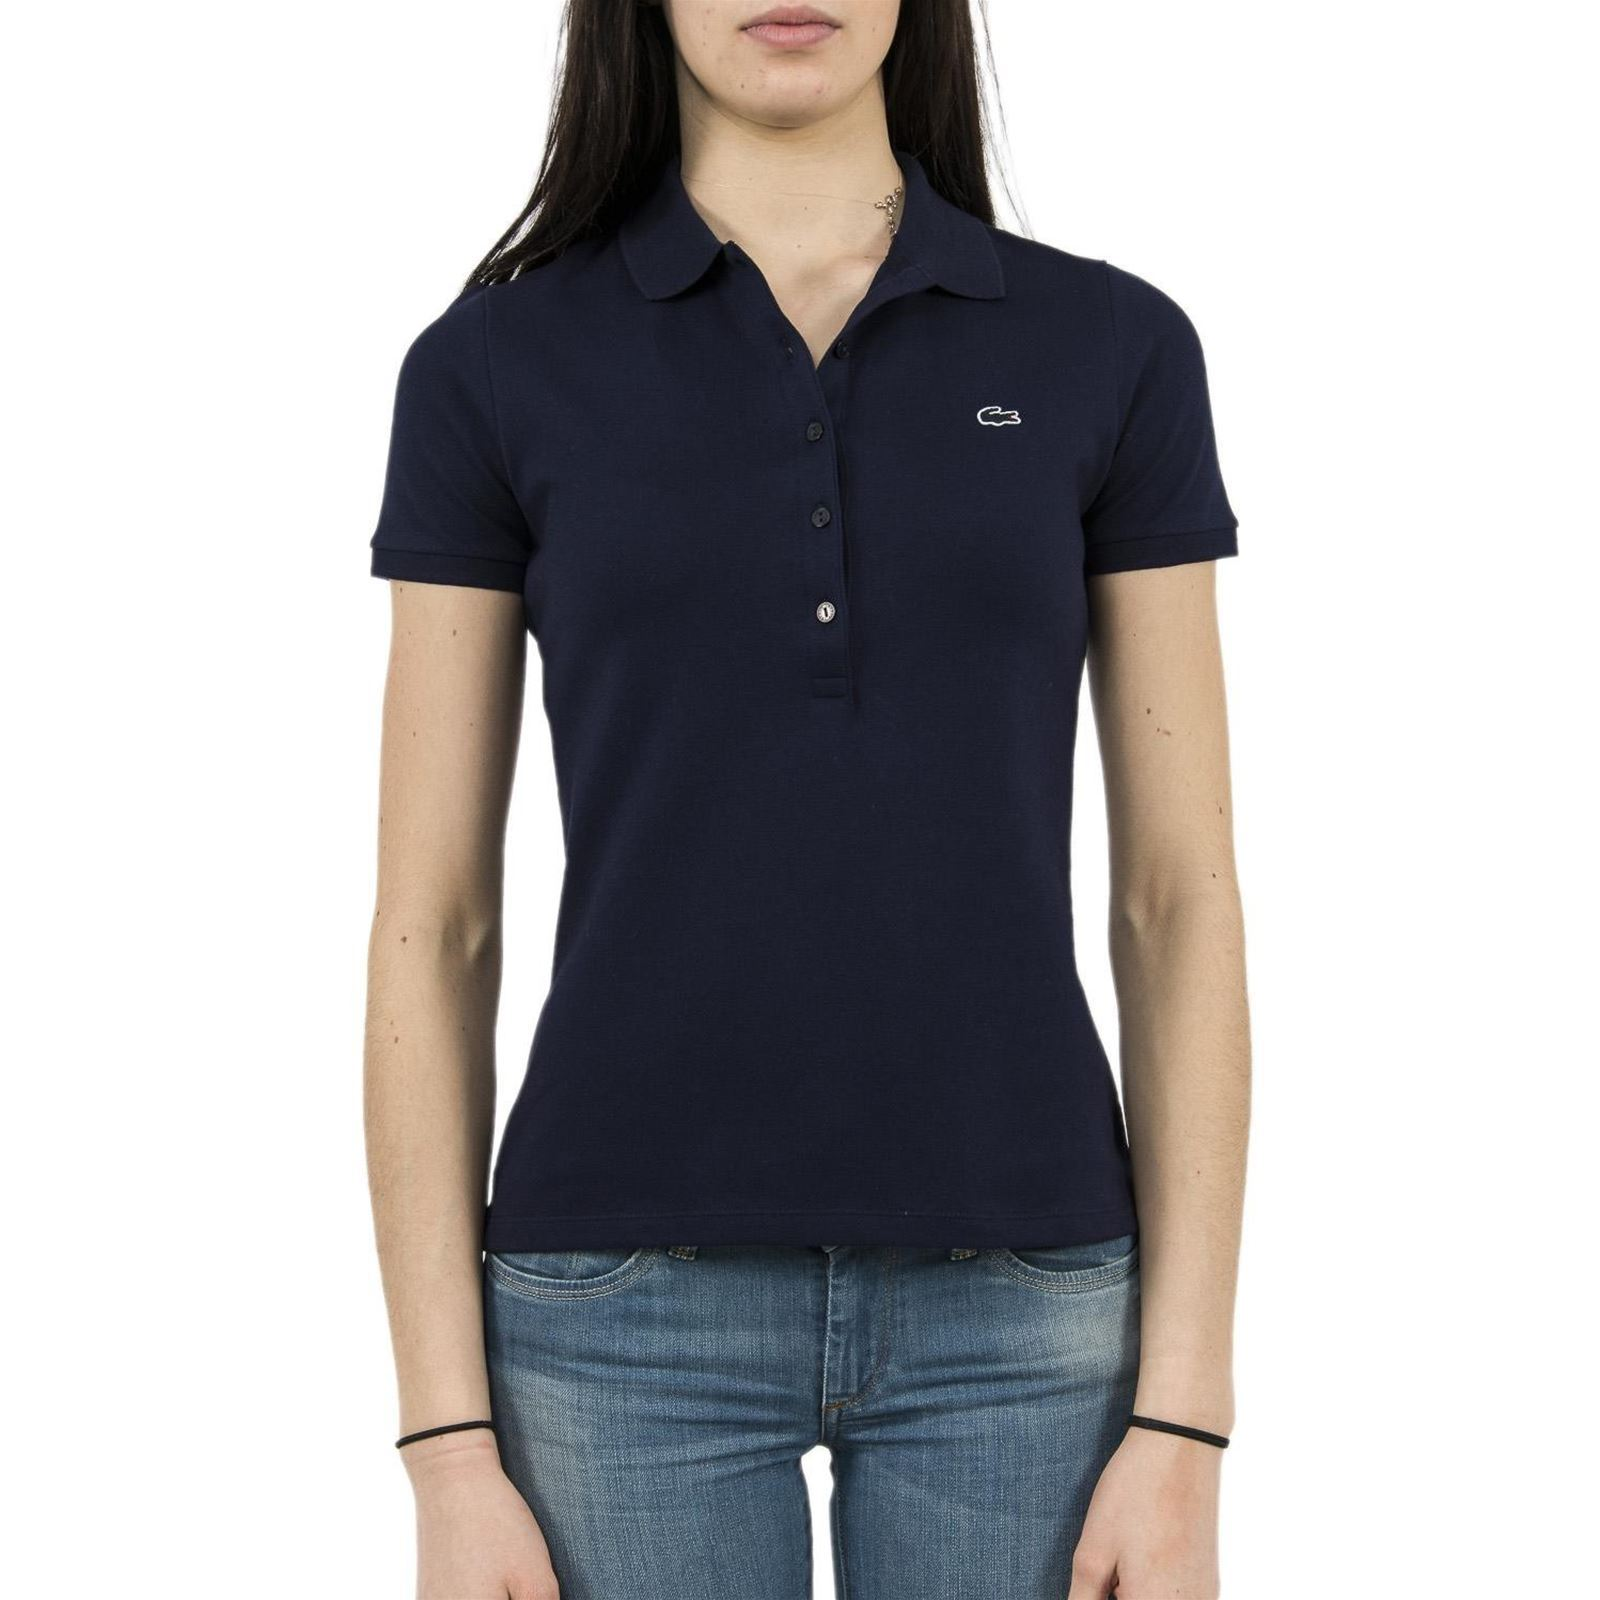 Lacoste Manches Bleu Pf6949Polo Courtes Femme V 2ID9WEHYbe